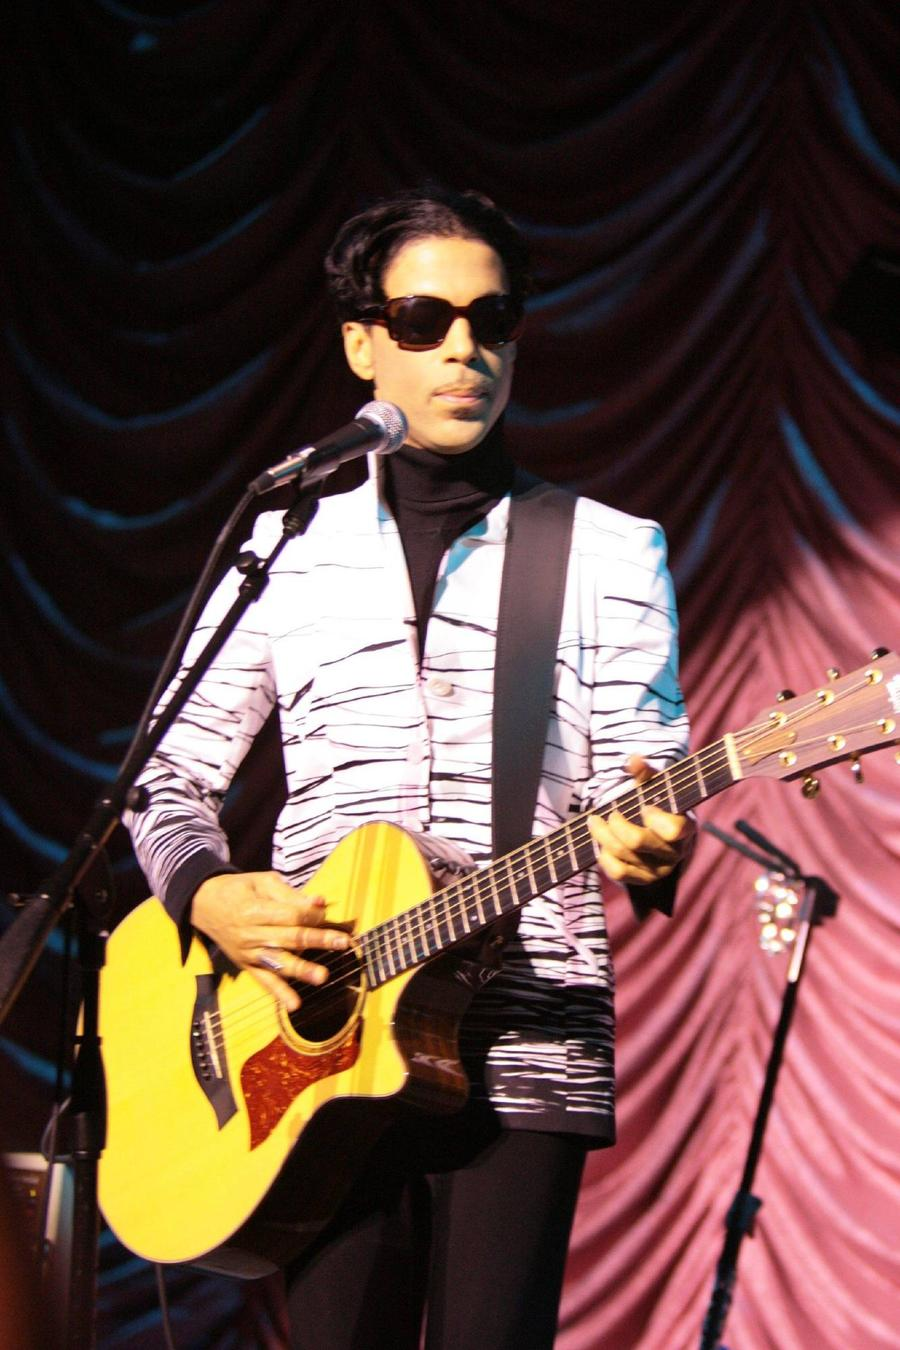 Prince's Musicology 'Inspiration' Files Creditor's Claim